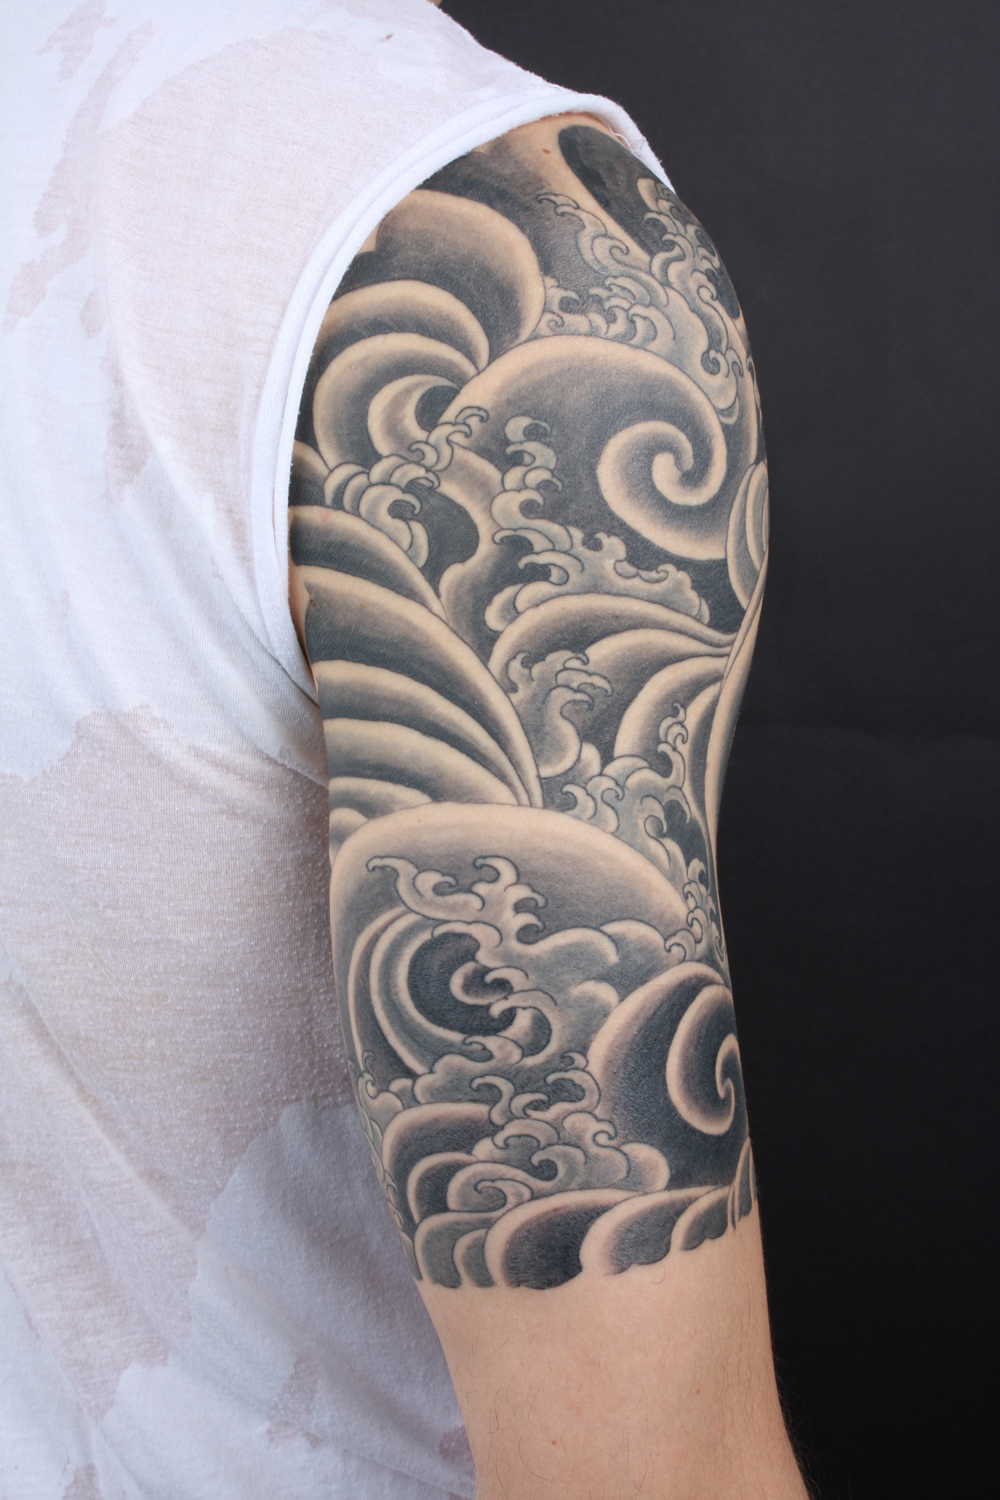 Sleeve Tattoo Artist: Tattooing & Art By Yoni Zilber